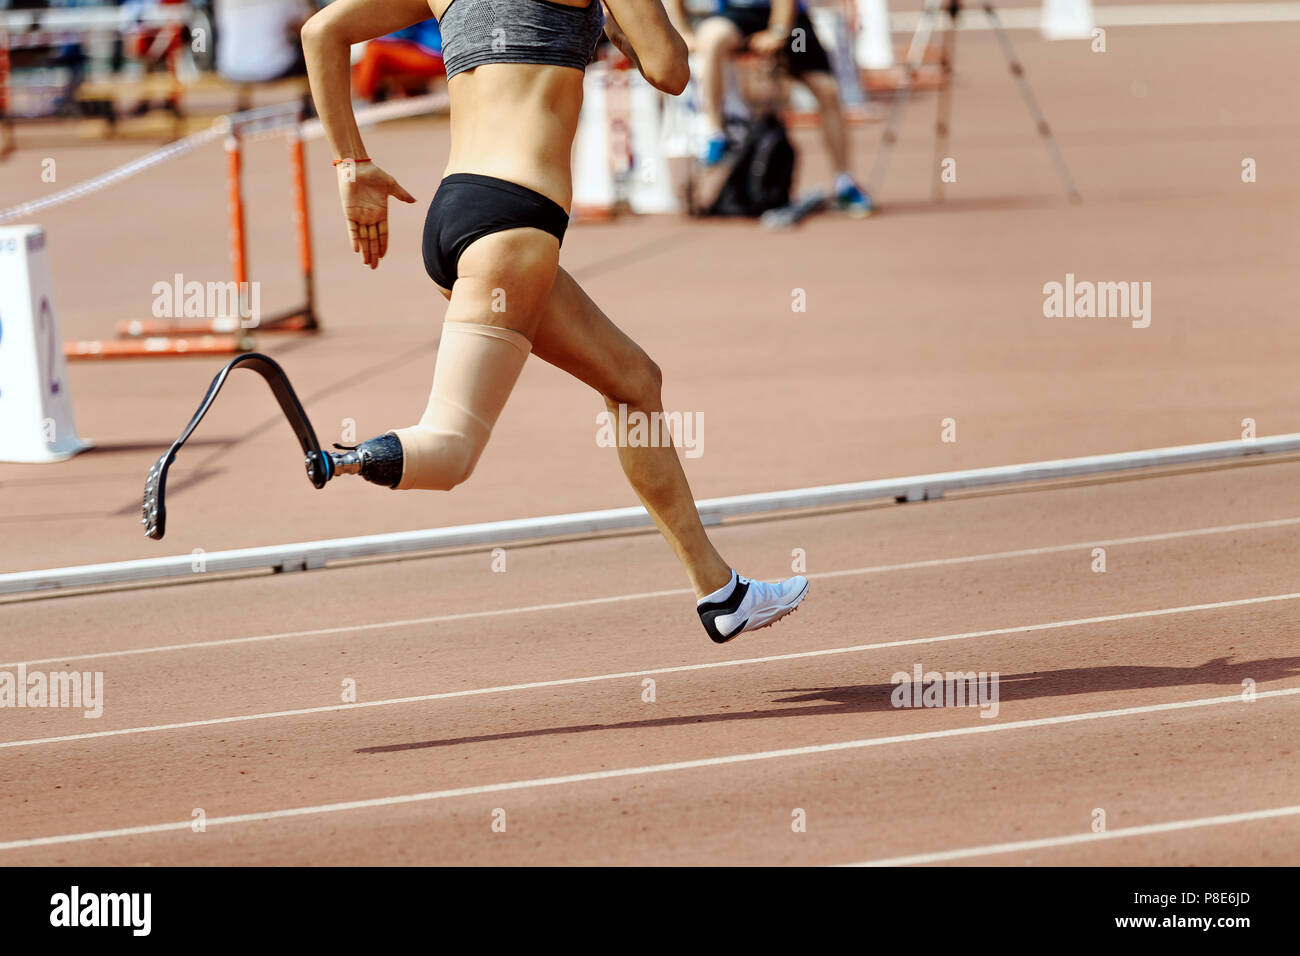 8ac8223585ecf8 woman runner disabled athlete on prosthesis leg running in track - Stock  Image